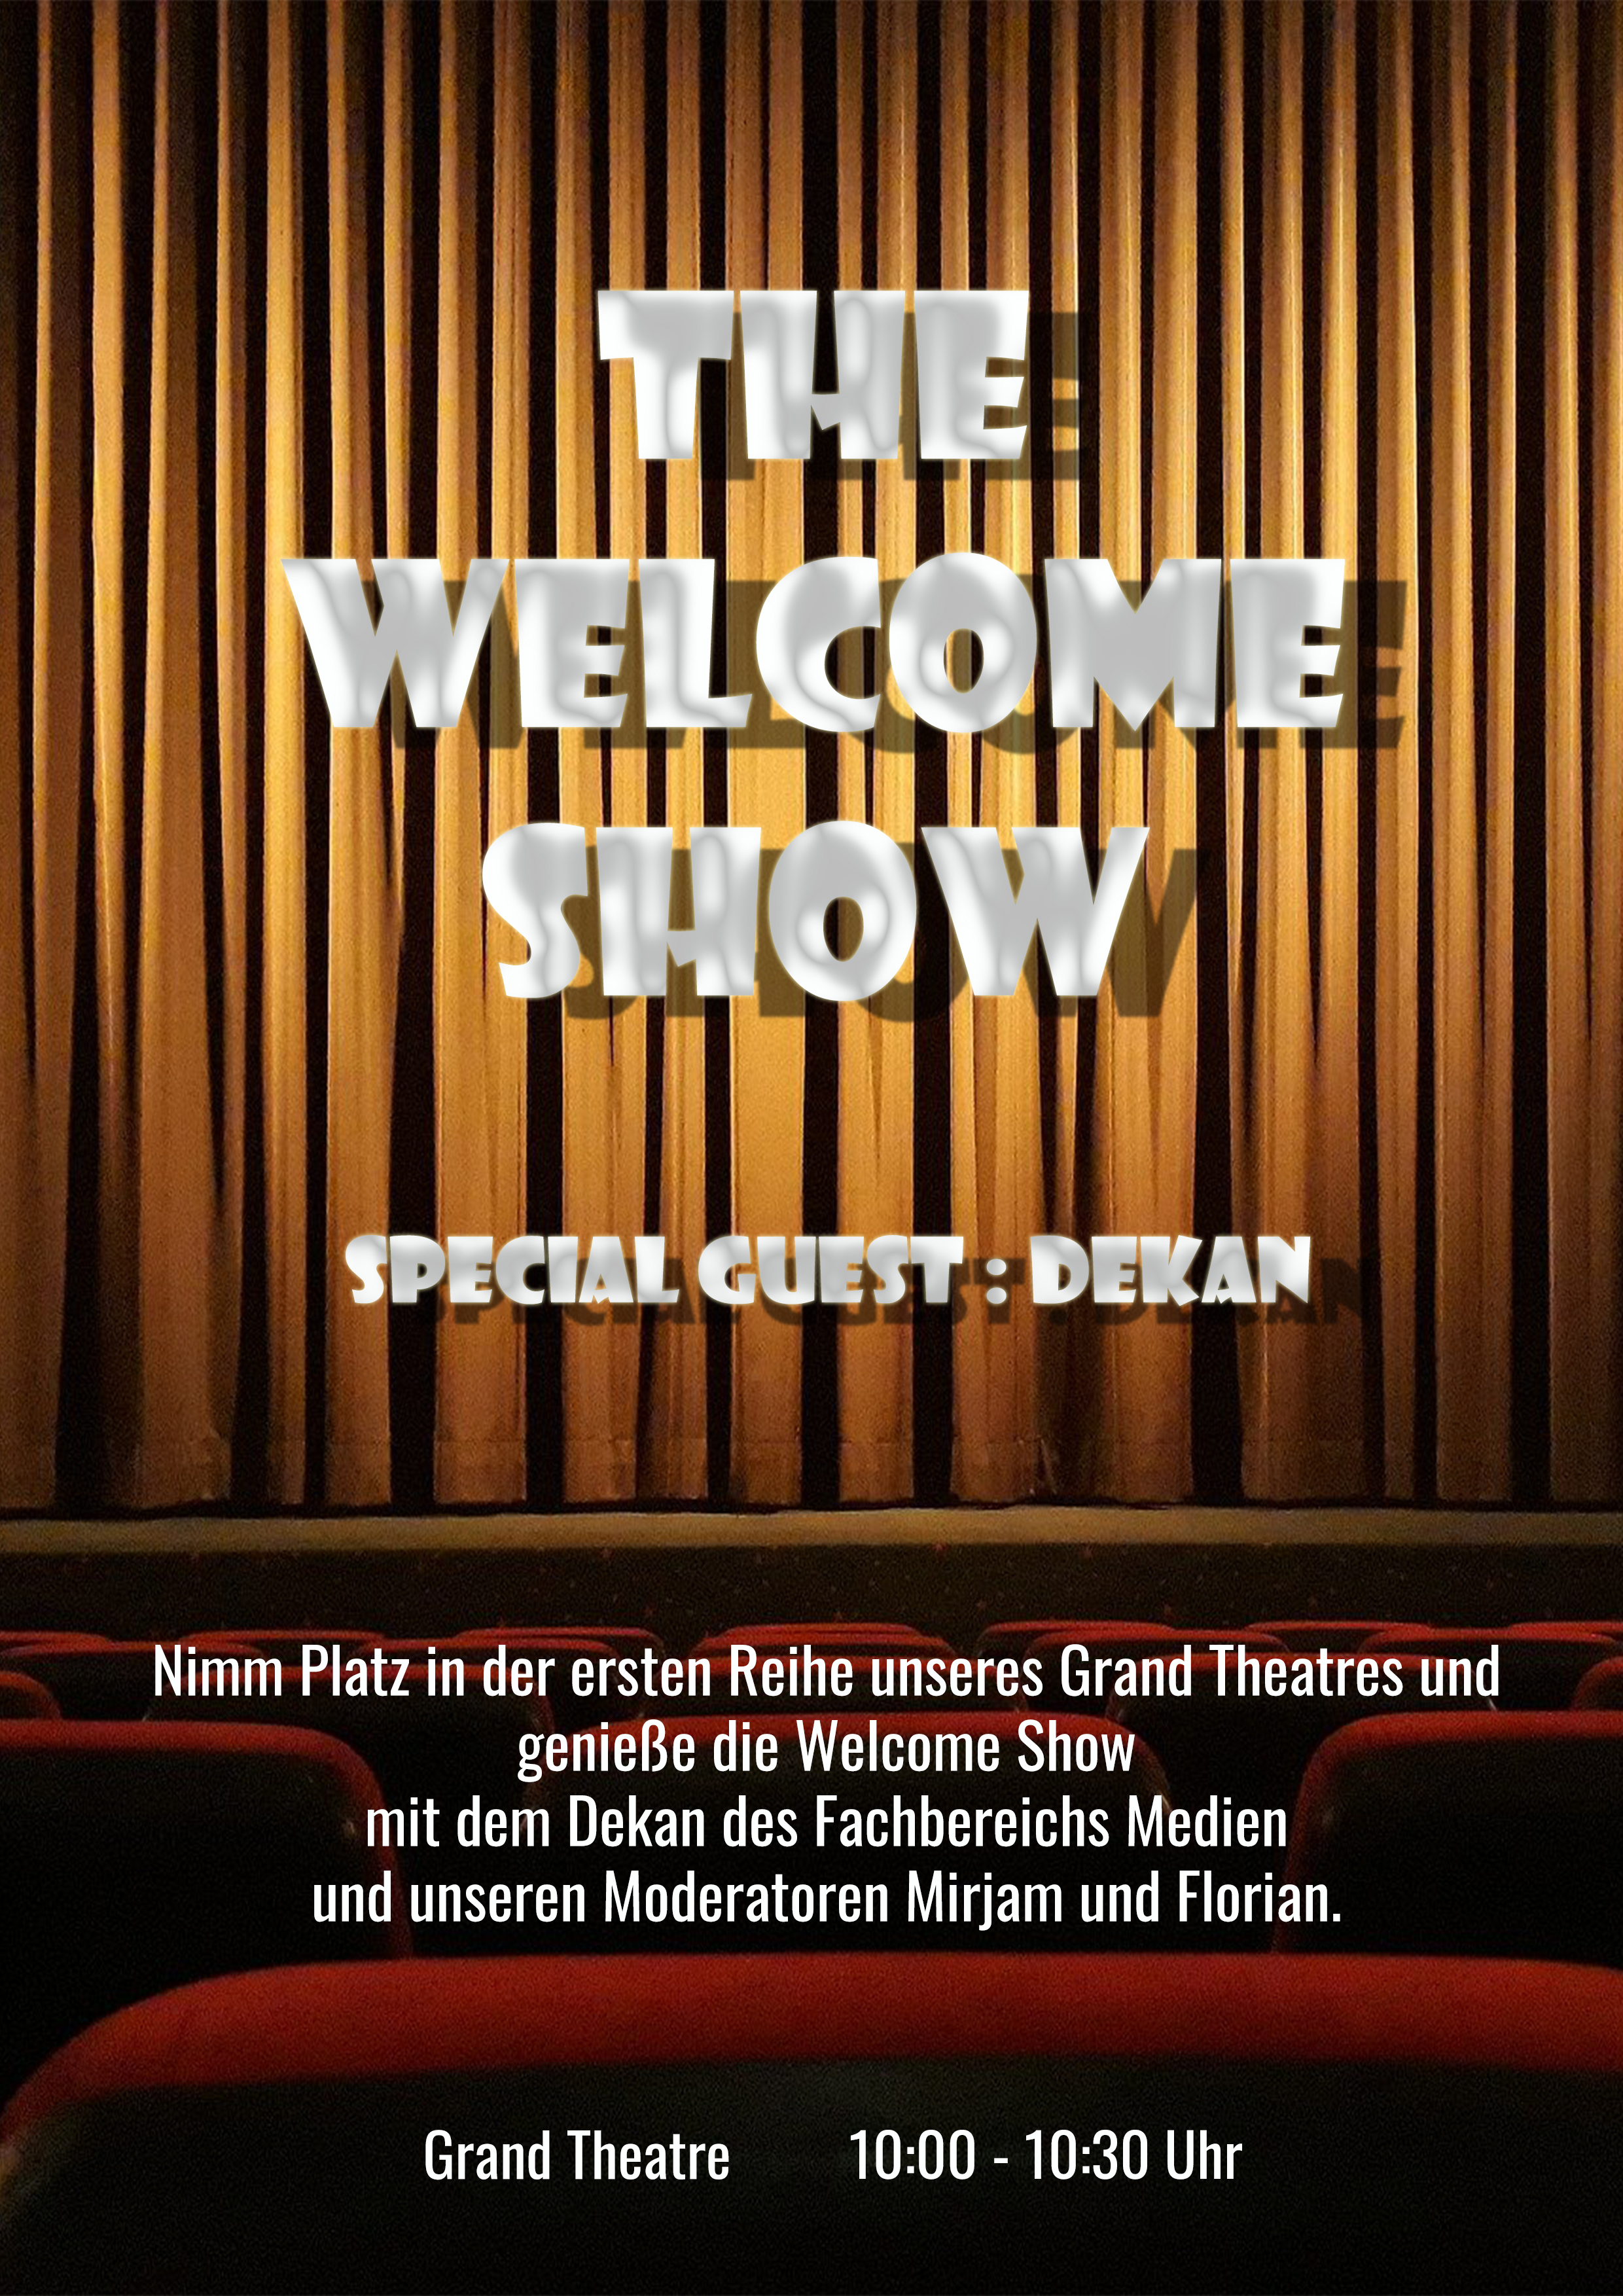 The Welcome Show